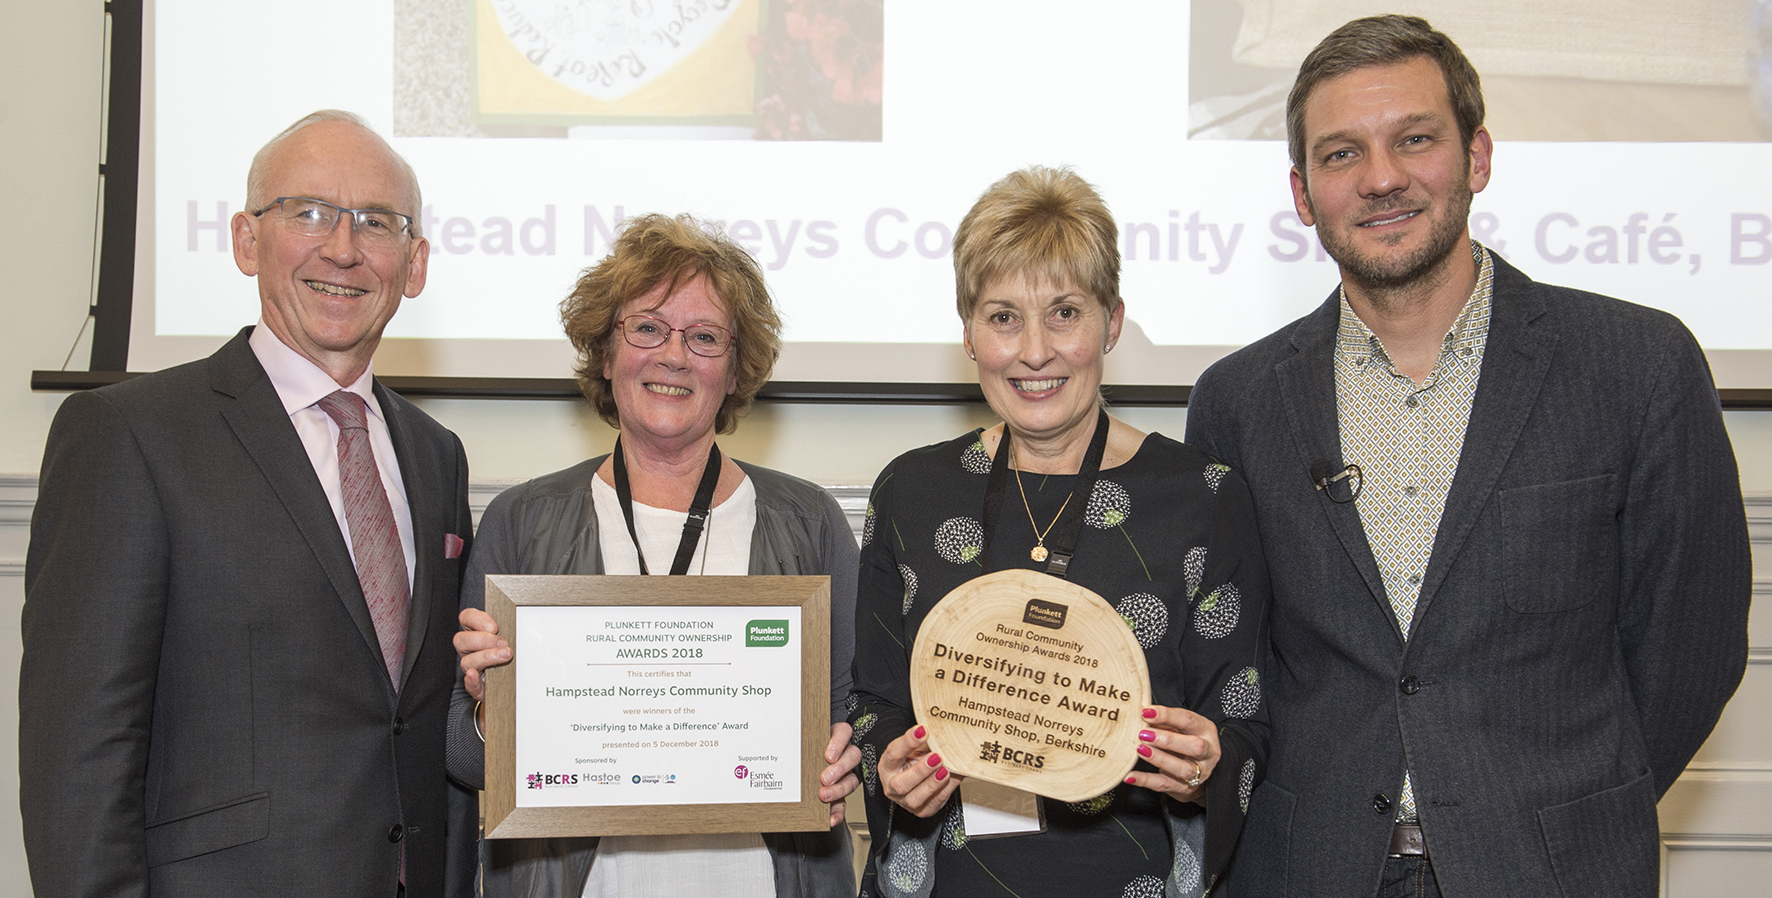 Hamsptead Norreys Community Shop, winners of Diversifying to Make a Difference